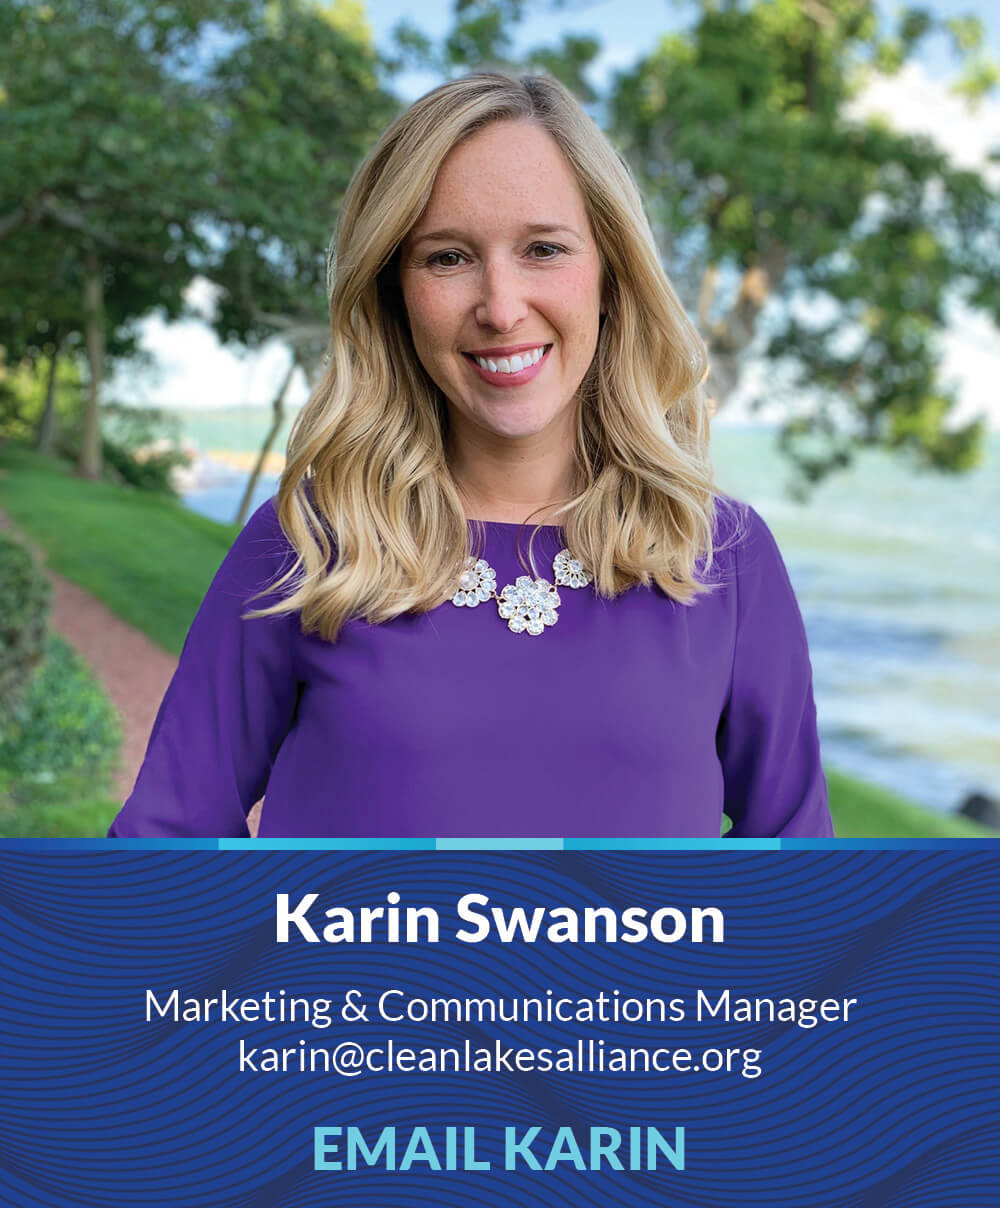 Karin Swanson, Marketing & Communications Manager